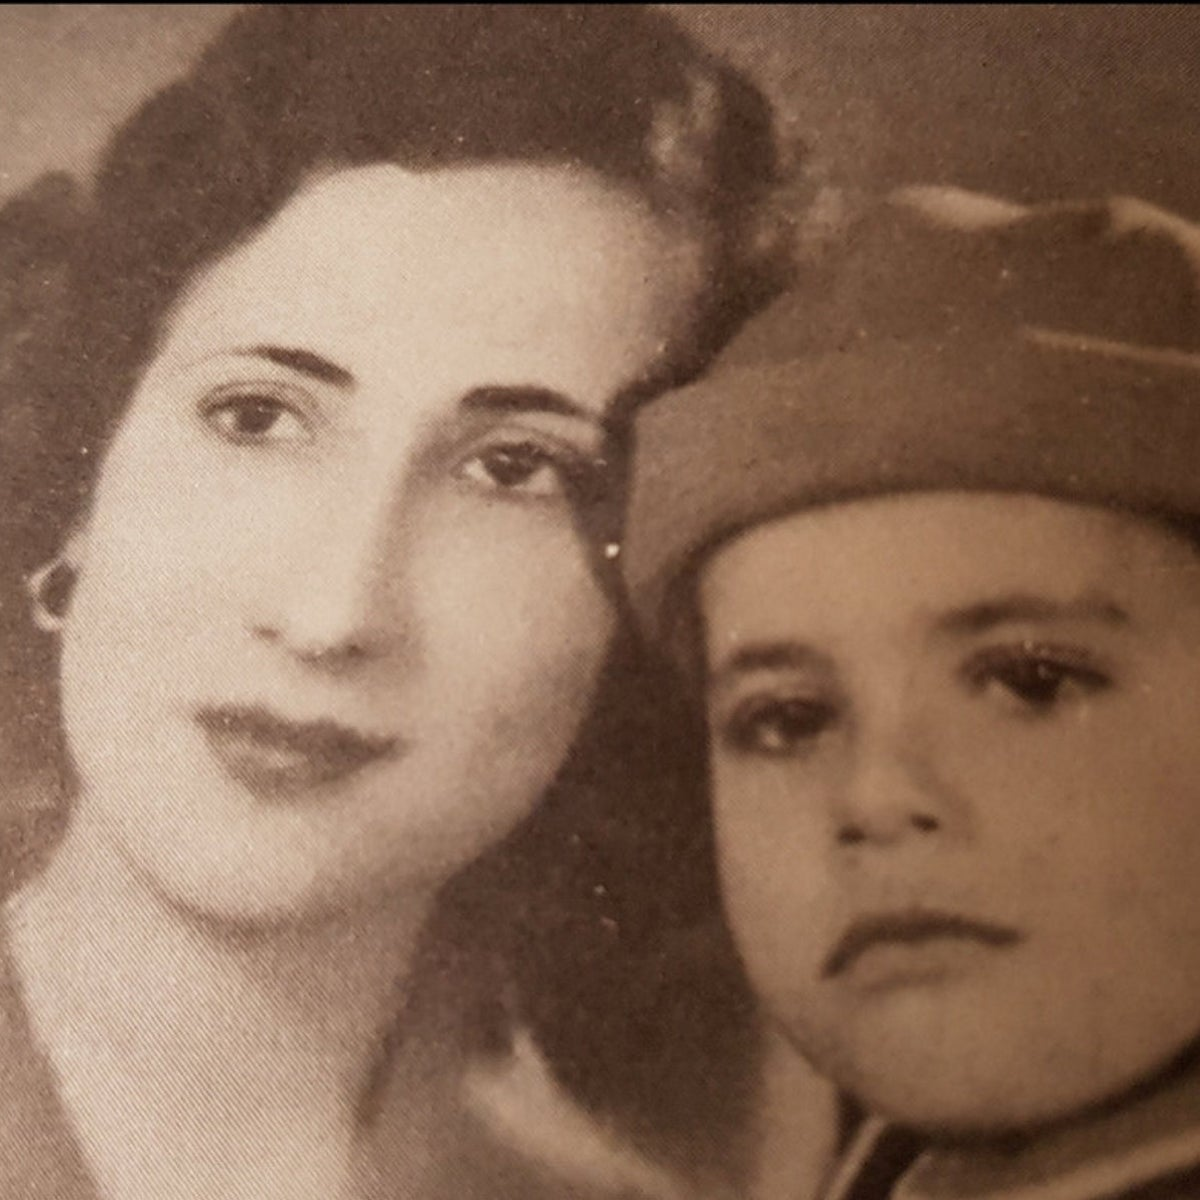 Sara Amram and her son Yisrael Amram